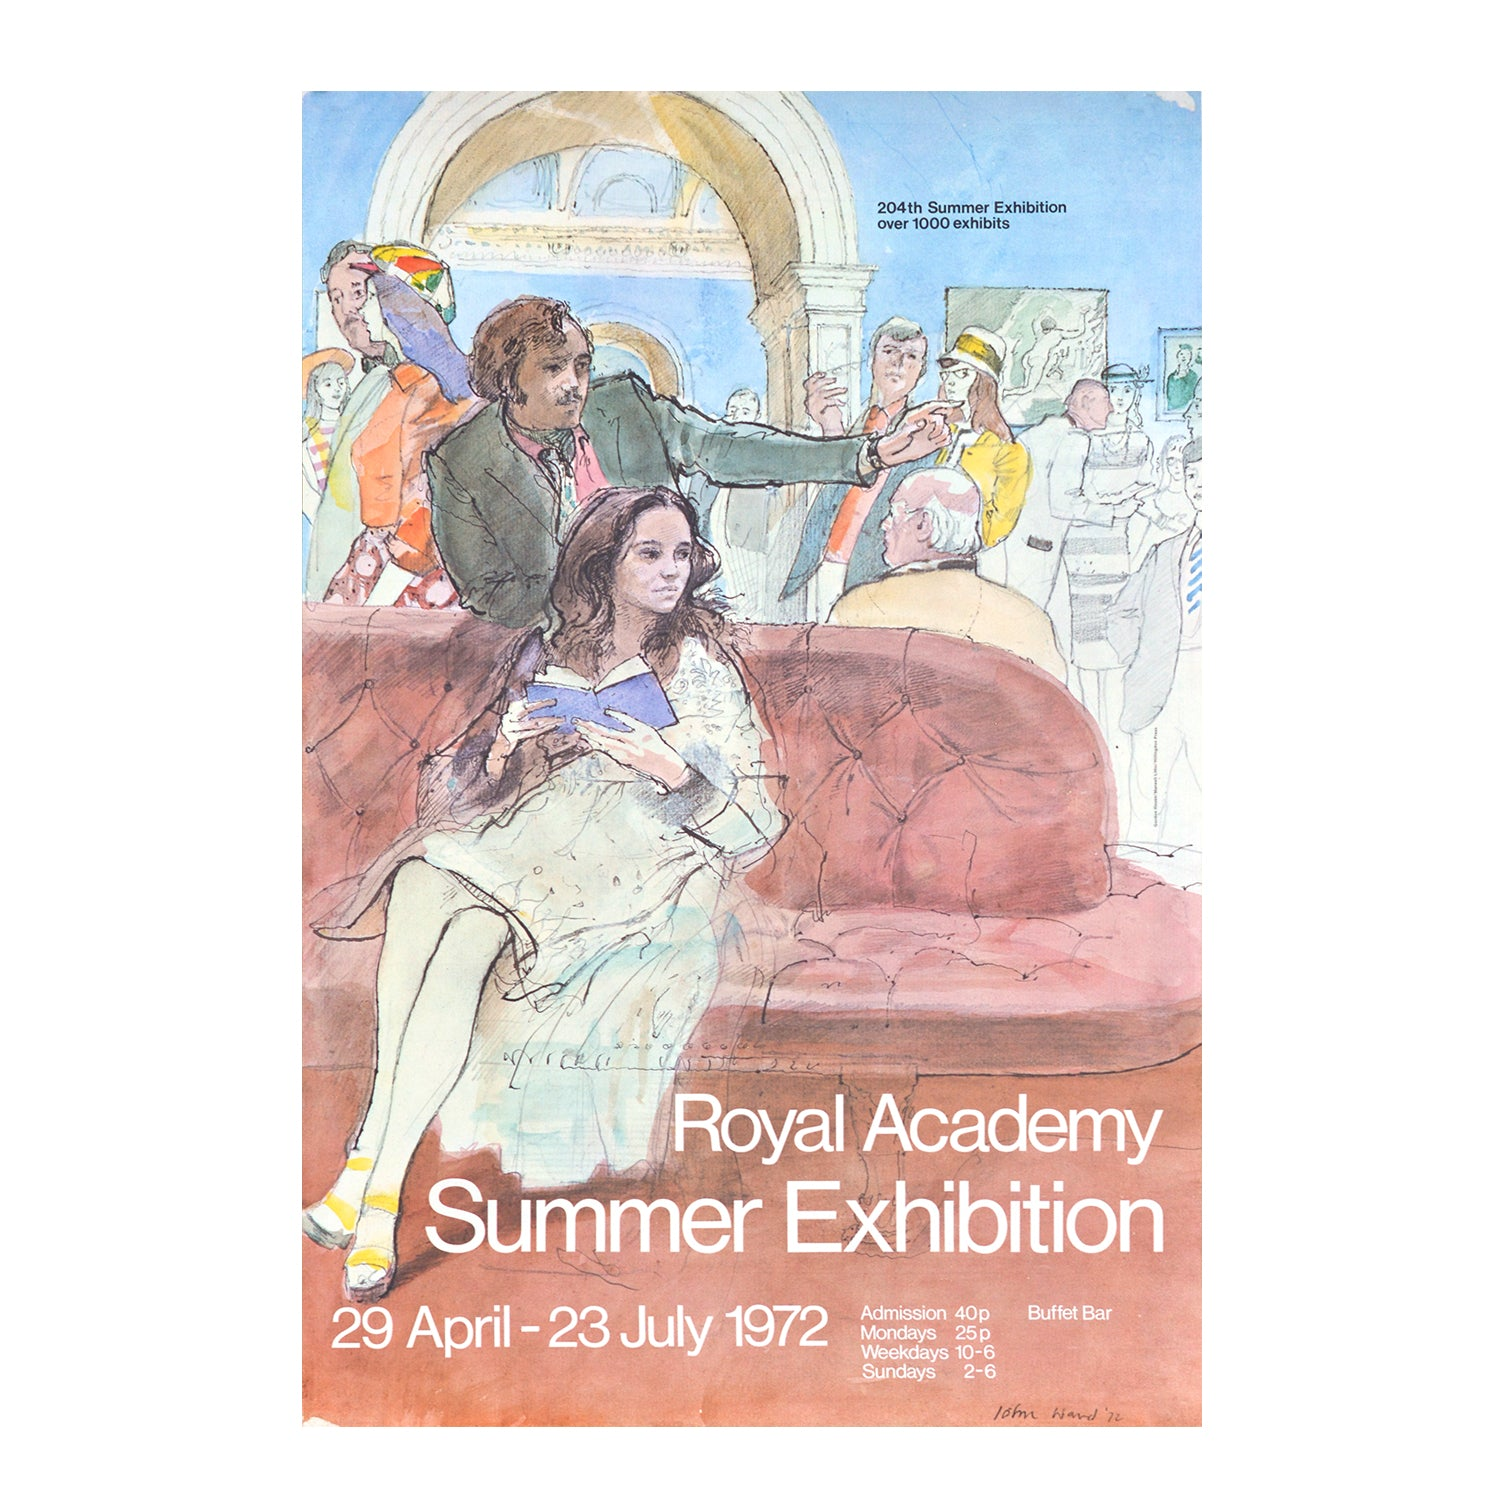 Royal Academy Summer Exhibition, 1972